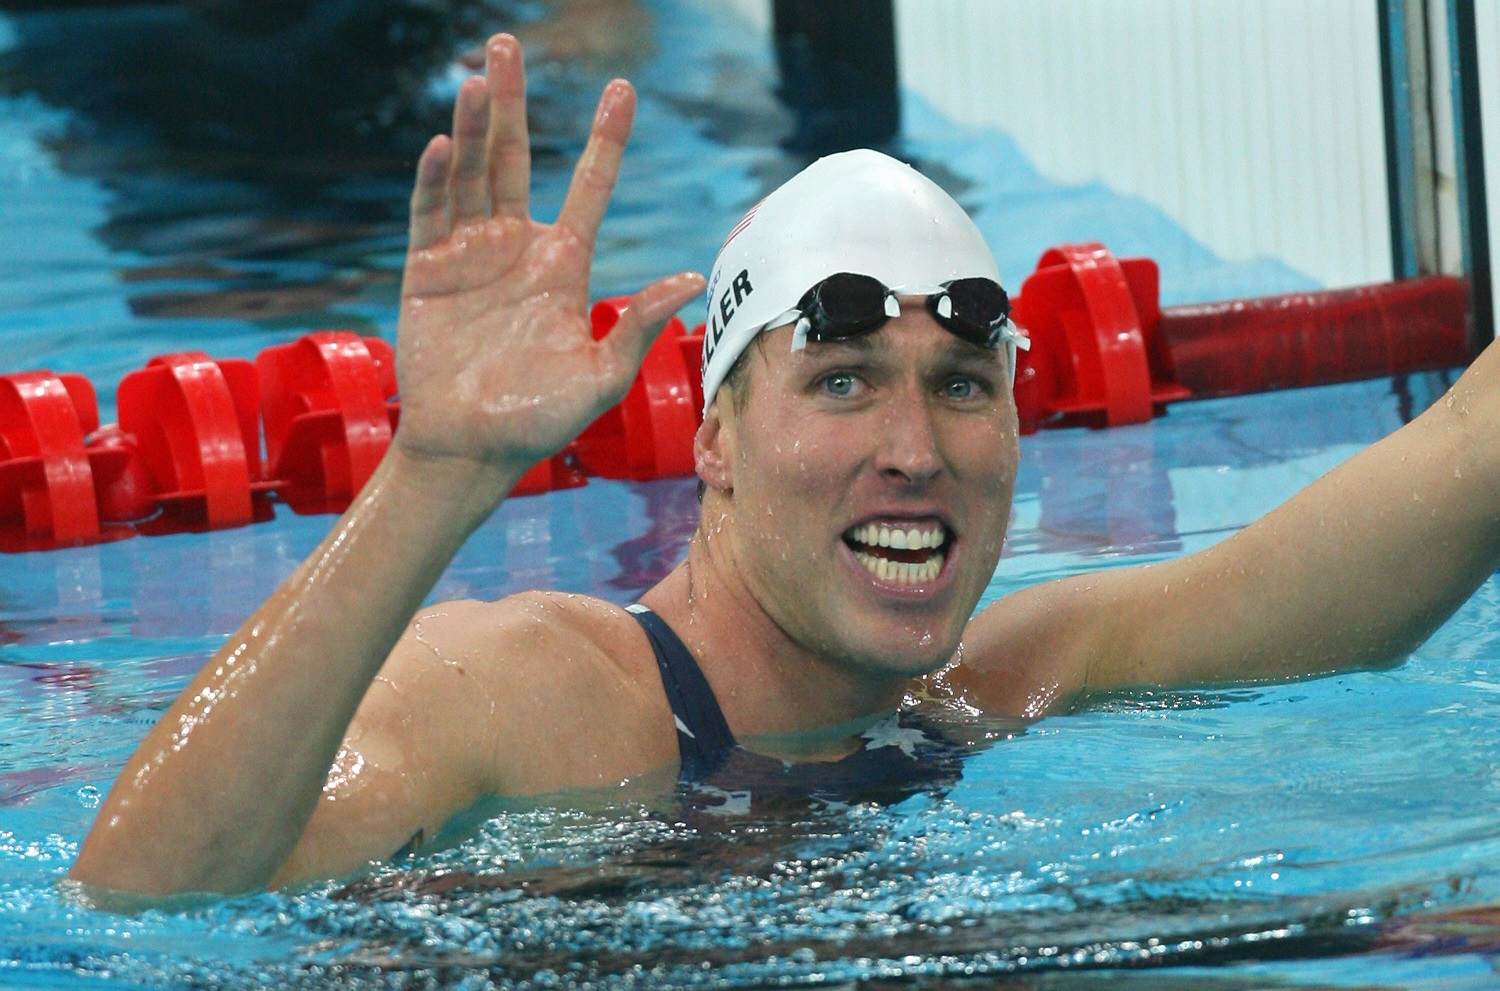 U.S. swimmer Klete Keller reacts to winning the men's 800-meter freestyle relay at the 2008 Beijing Olympic Games